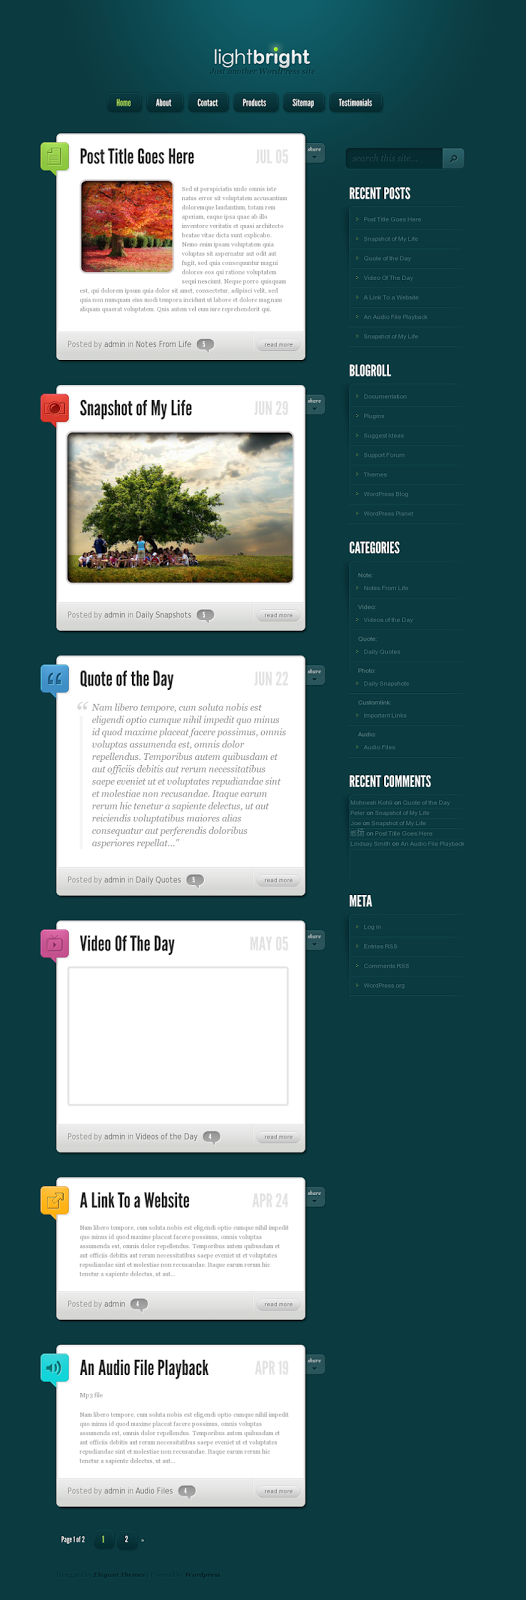 LightBright WordPress Theme